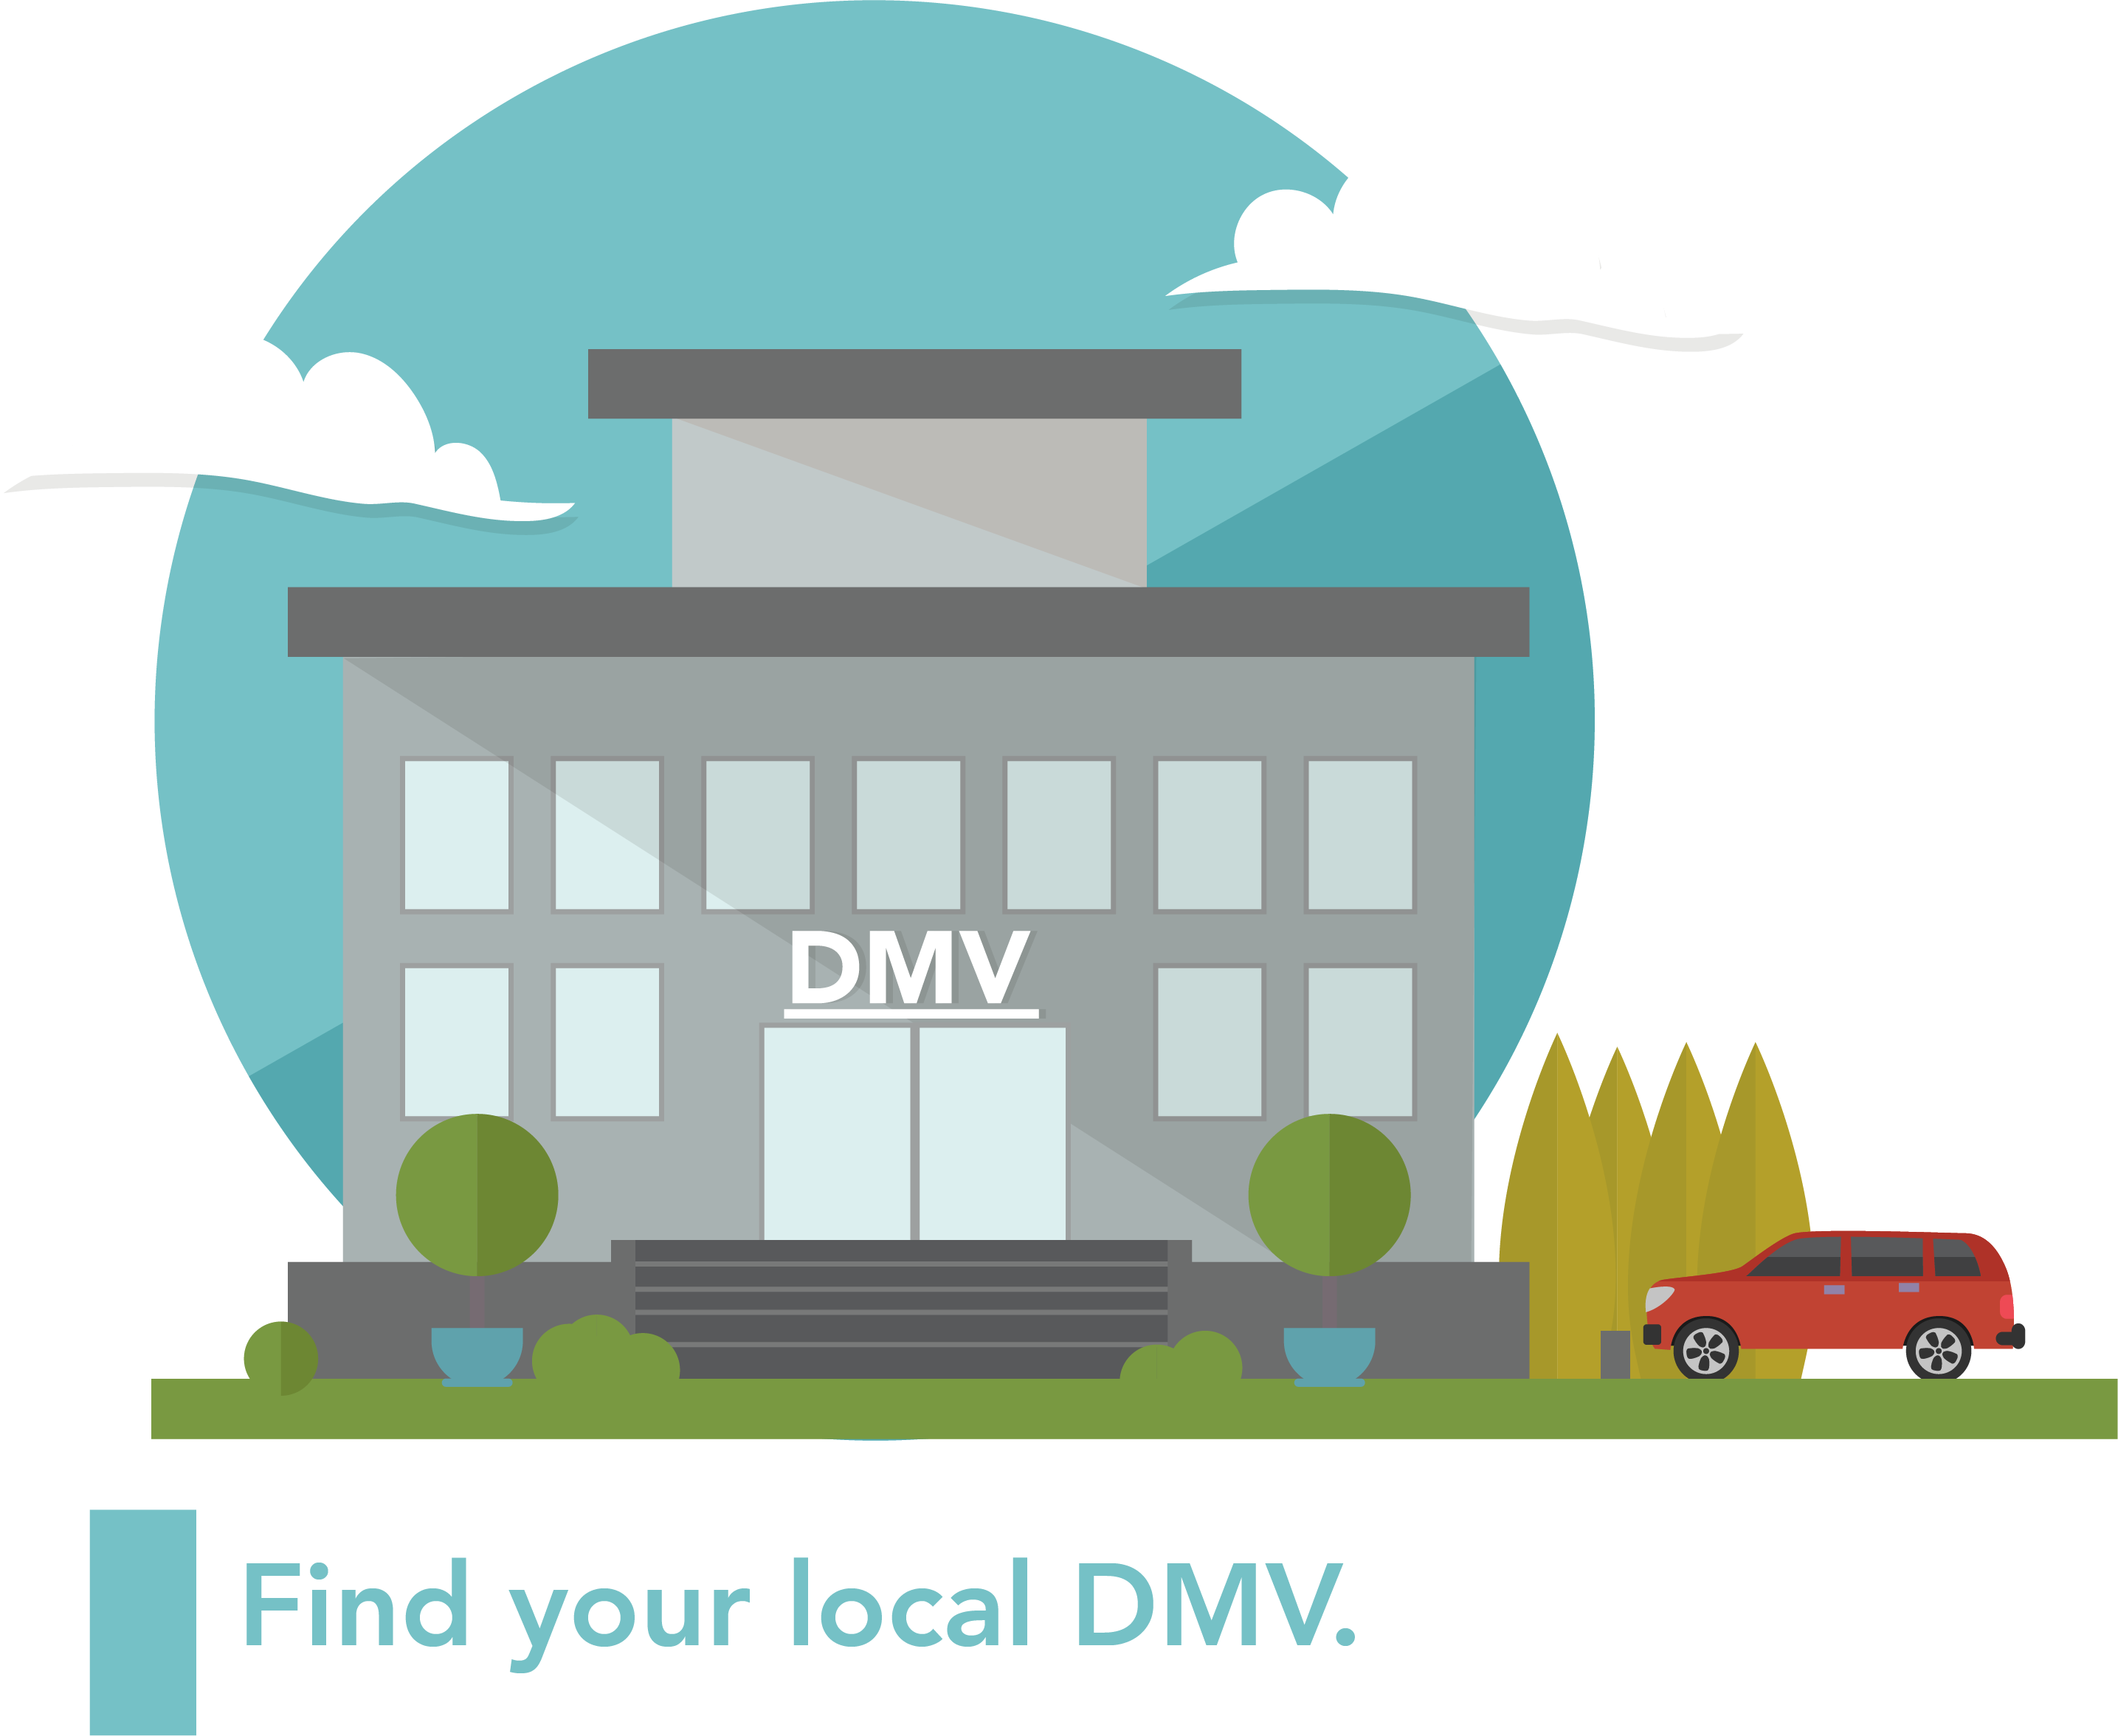 A graphic of a DMV building